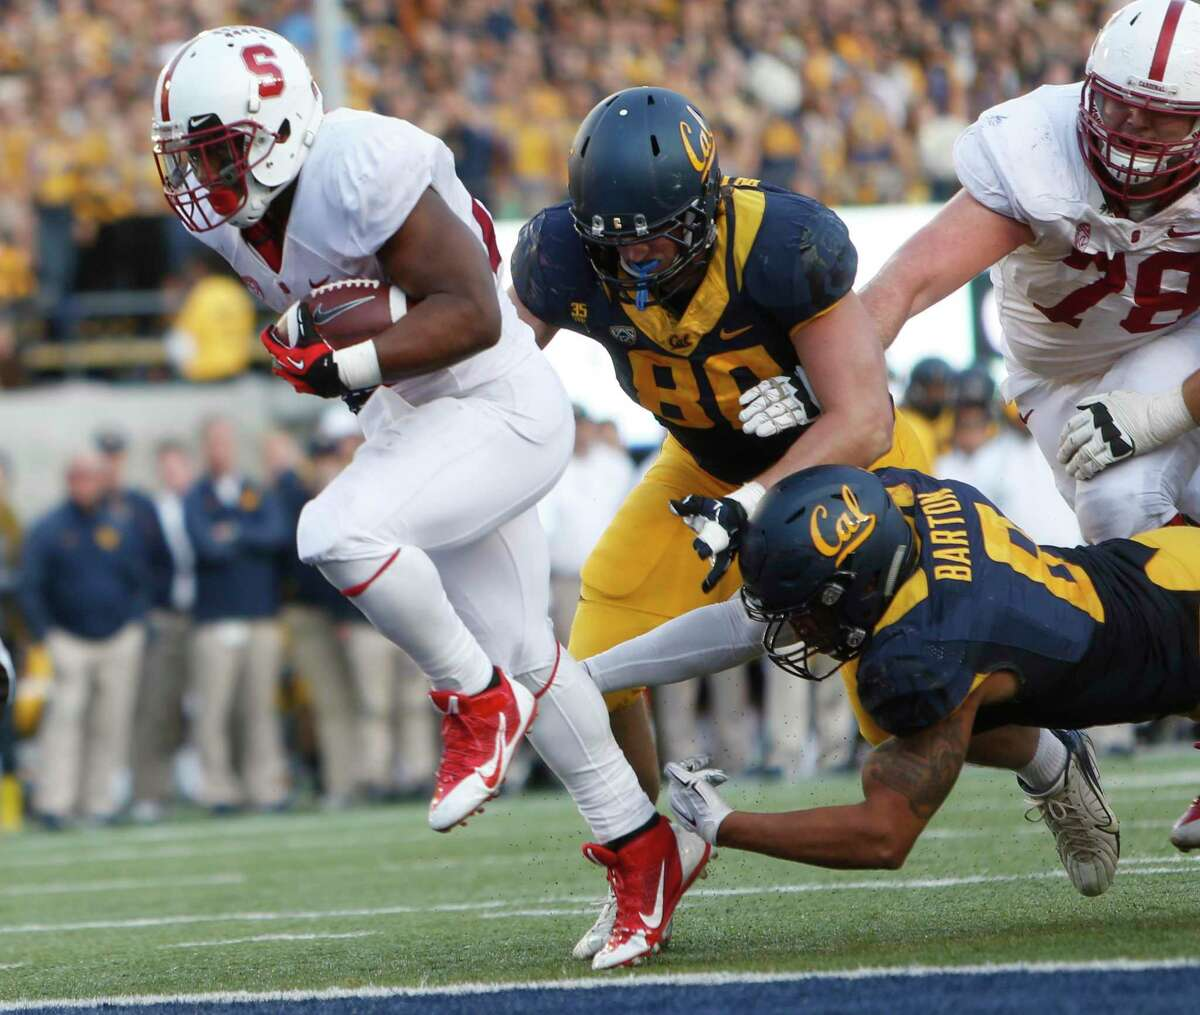 Stanford's Remound Wright scores his 4th touchdown of the game in 4th quarter of 38-17 win over California during NCAA football game at Cal Memorial Stadium in Berkeley, Calif., on Saturday, November 22, 2014.